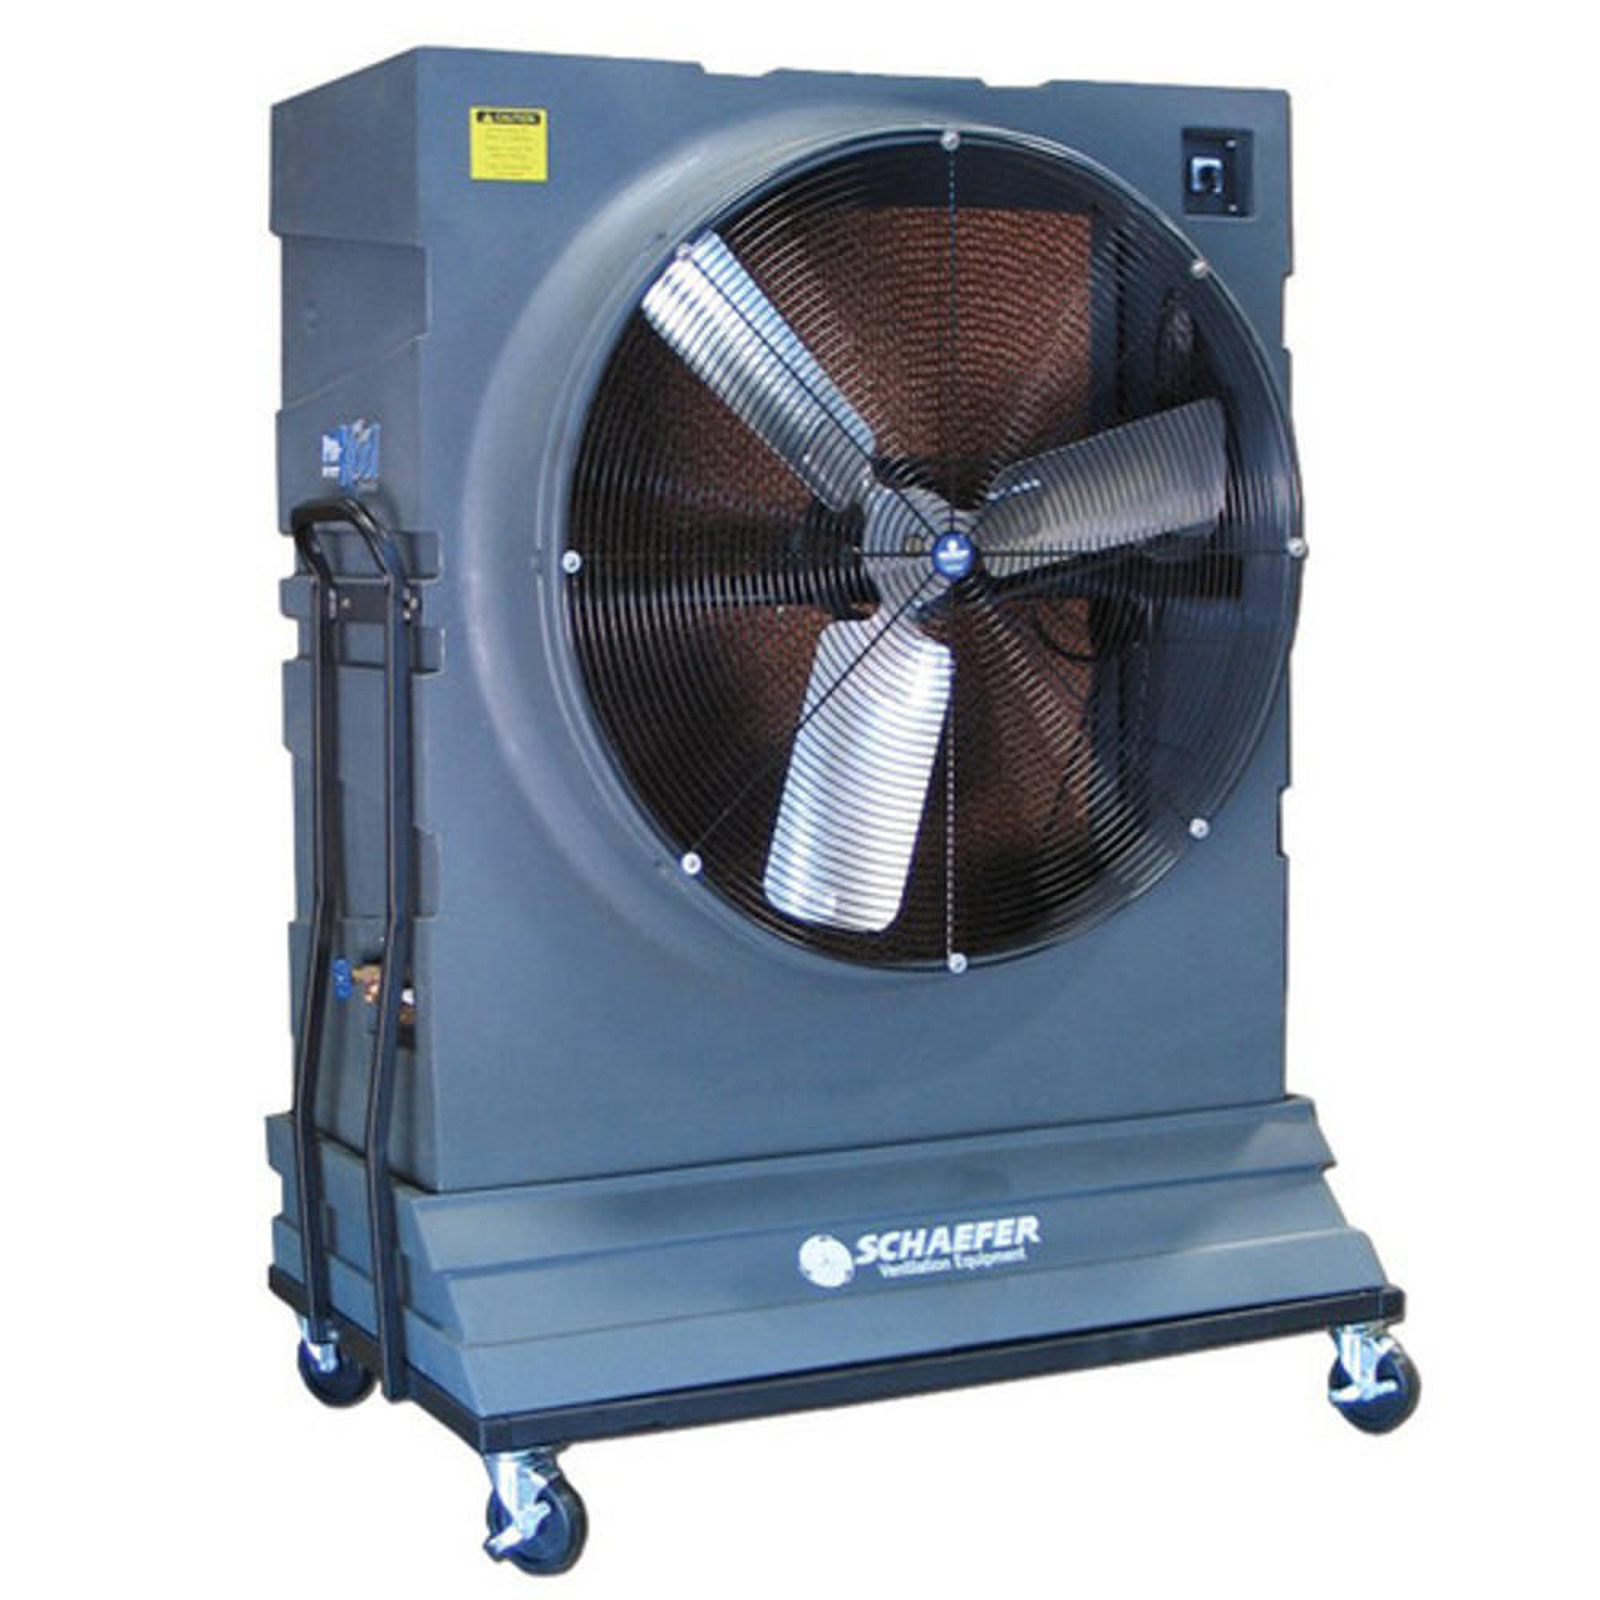 Pro-Kool PROK142-2HV 42 in. 1 HP Portable Evaporative Coolers PartNumber: MCR1647786112